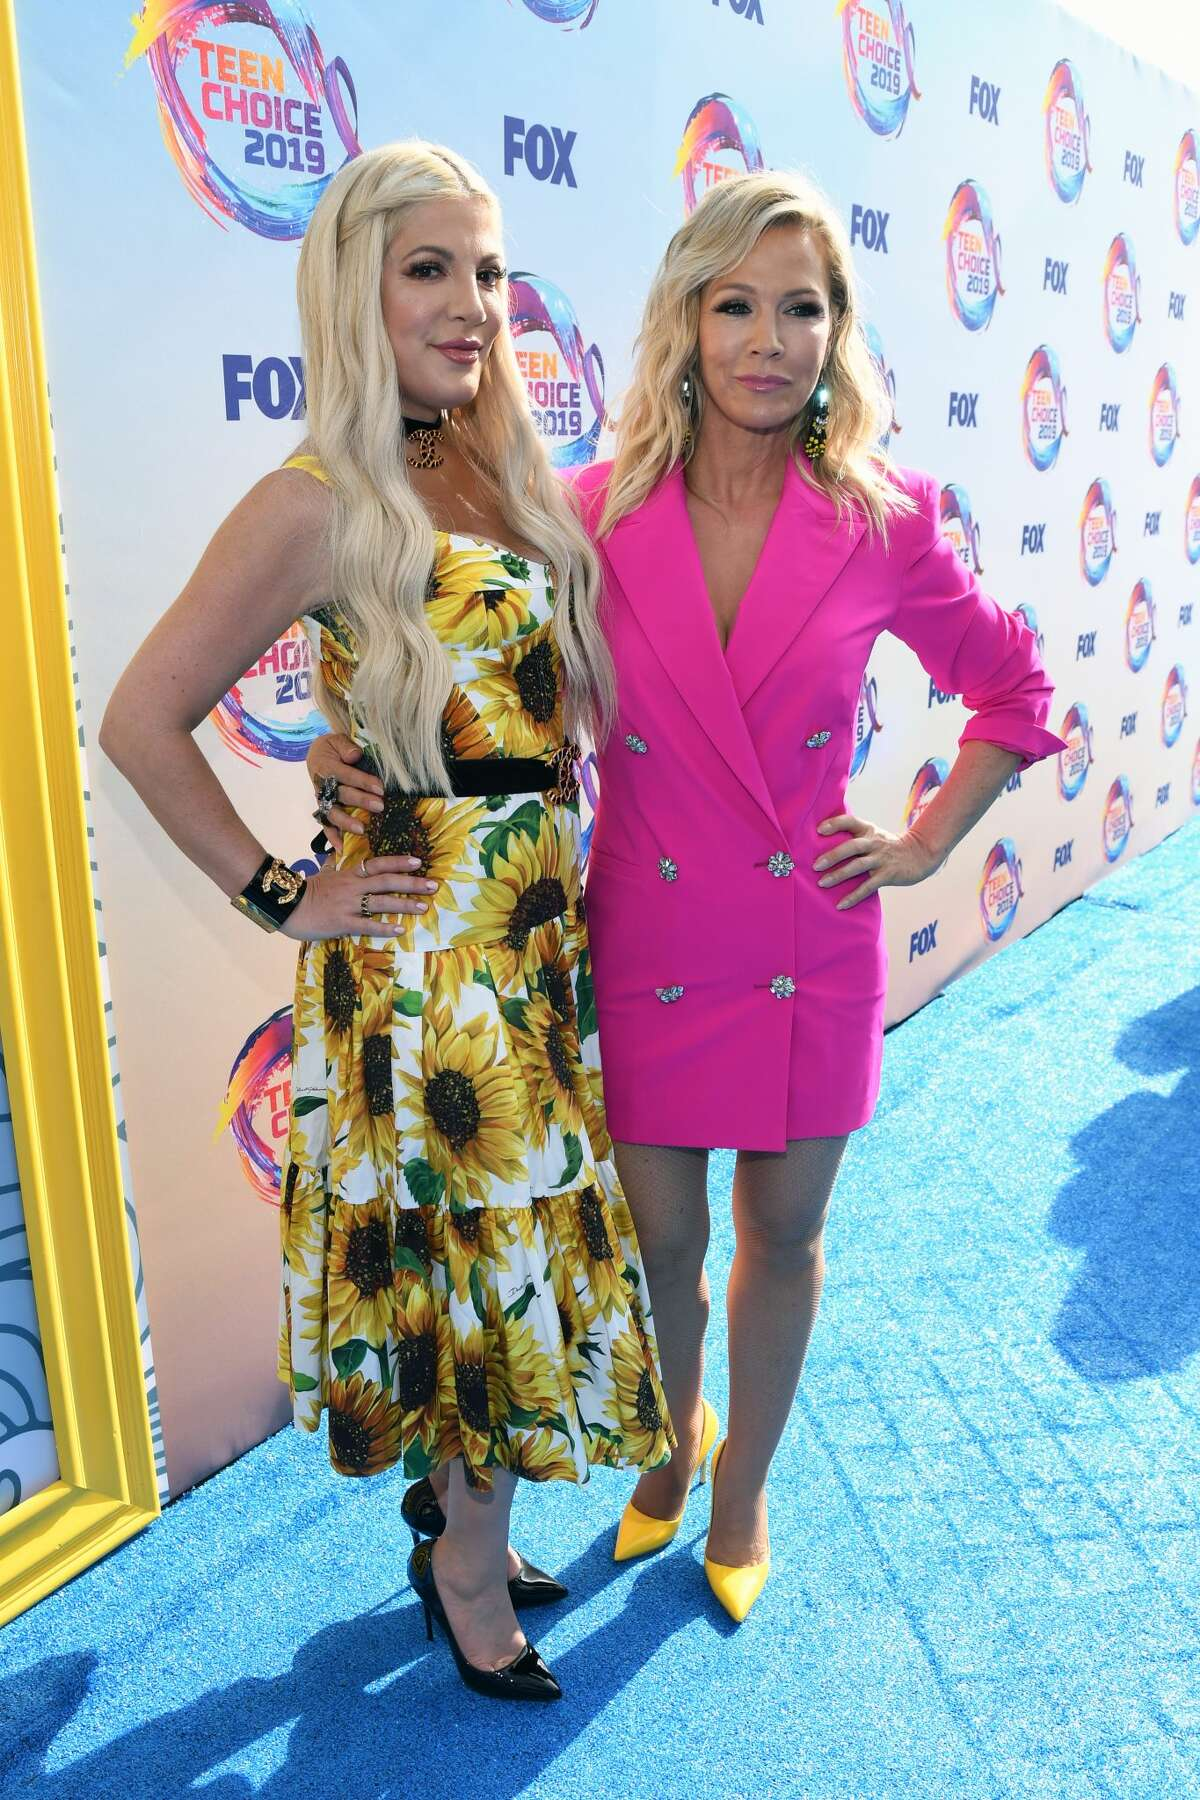 HERMOSA BEACH, CALIFORNIA - AUGUST 11: (L-R) Tori Spelling and Jennie Garth attend FOX's Teen Choice Awards 2019 on August 11, 2019 in Hermosa Beach, California. (Photo by Kevin Mazur/Getty Images)